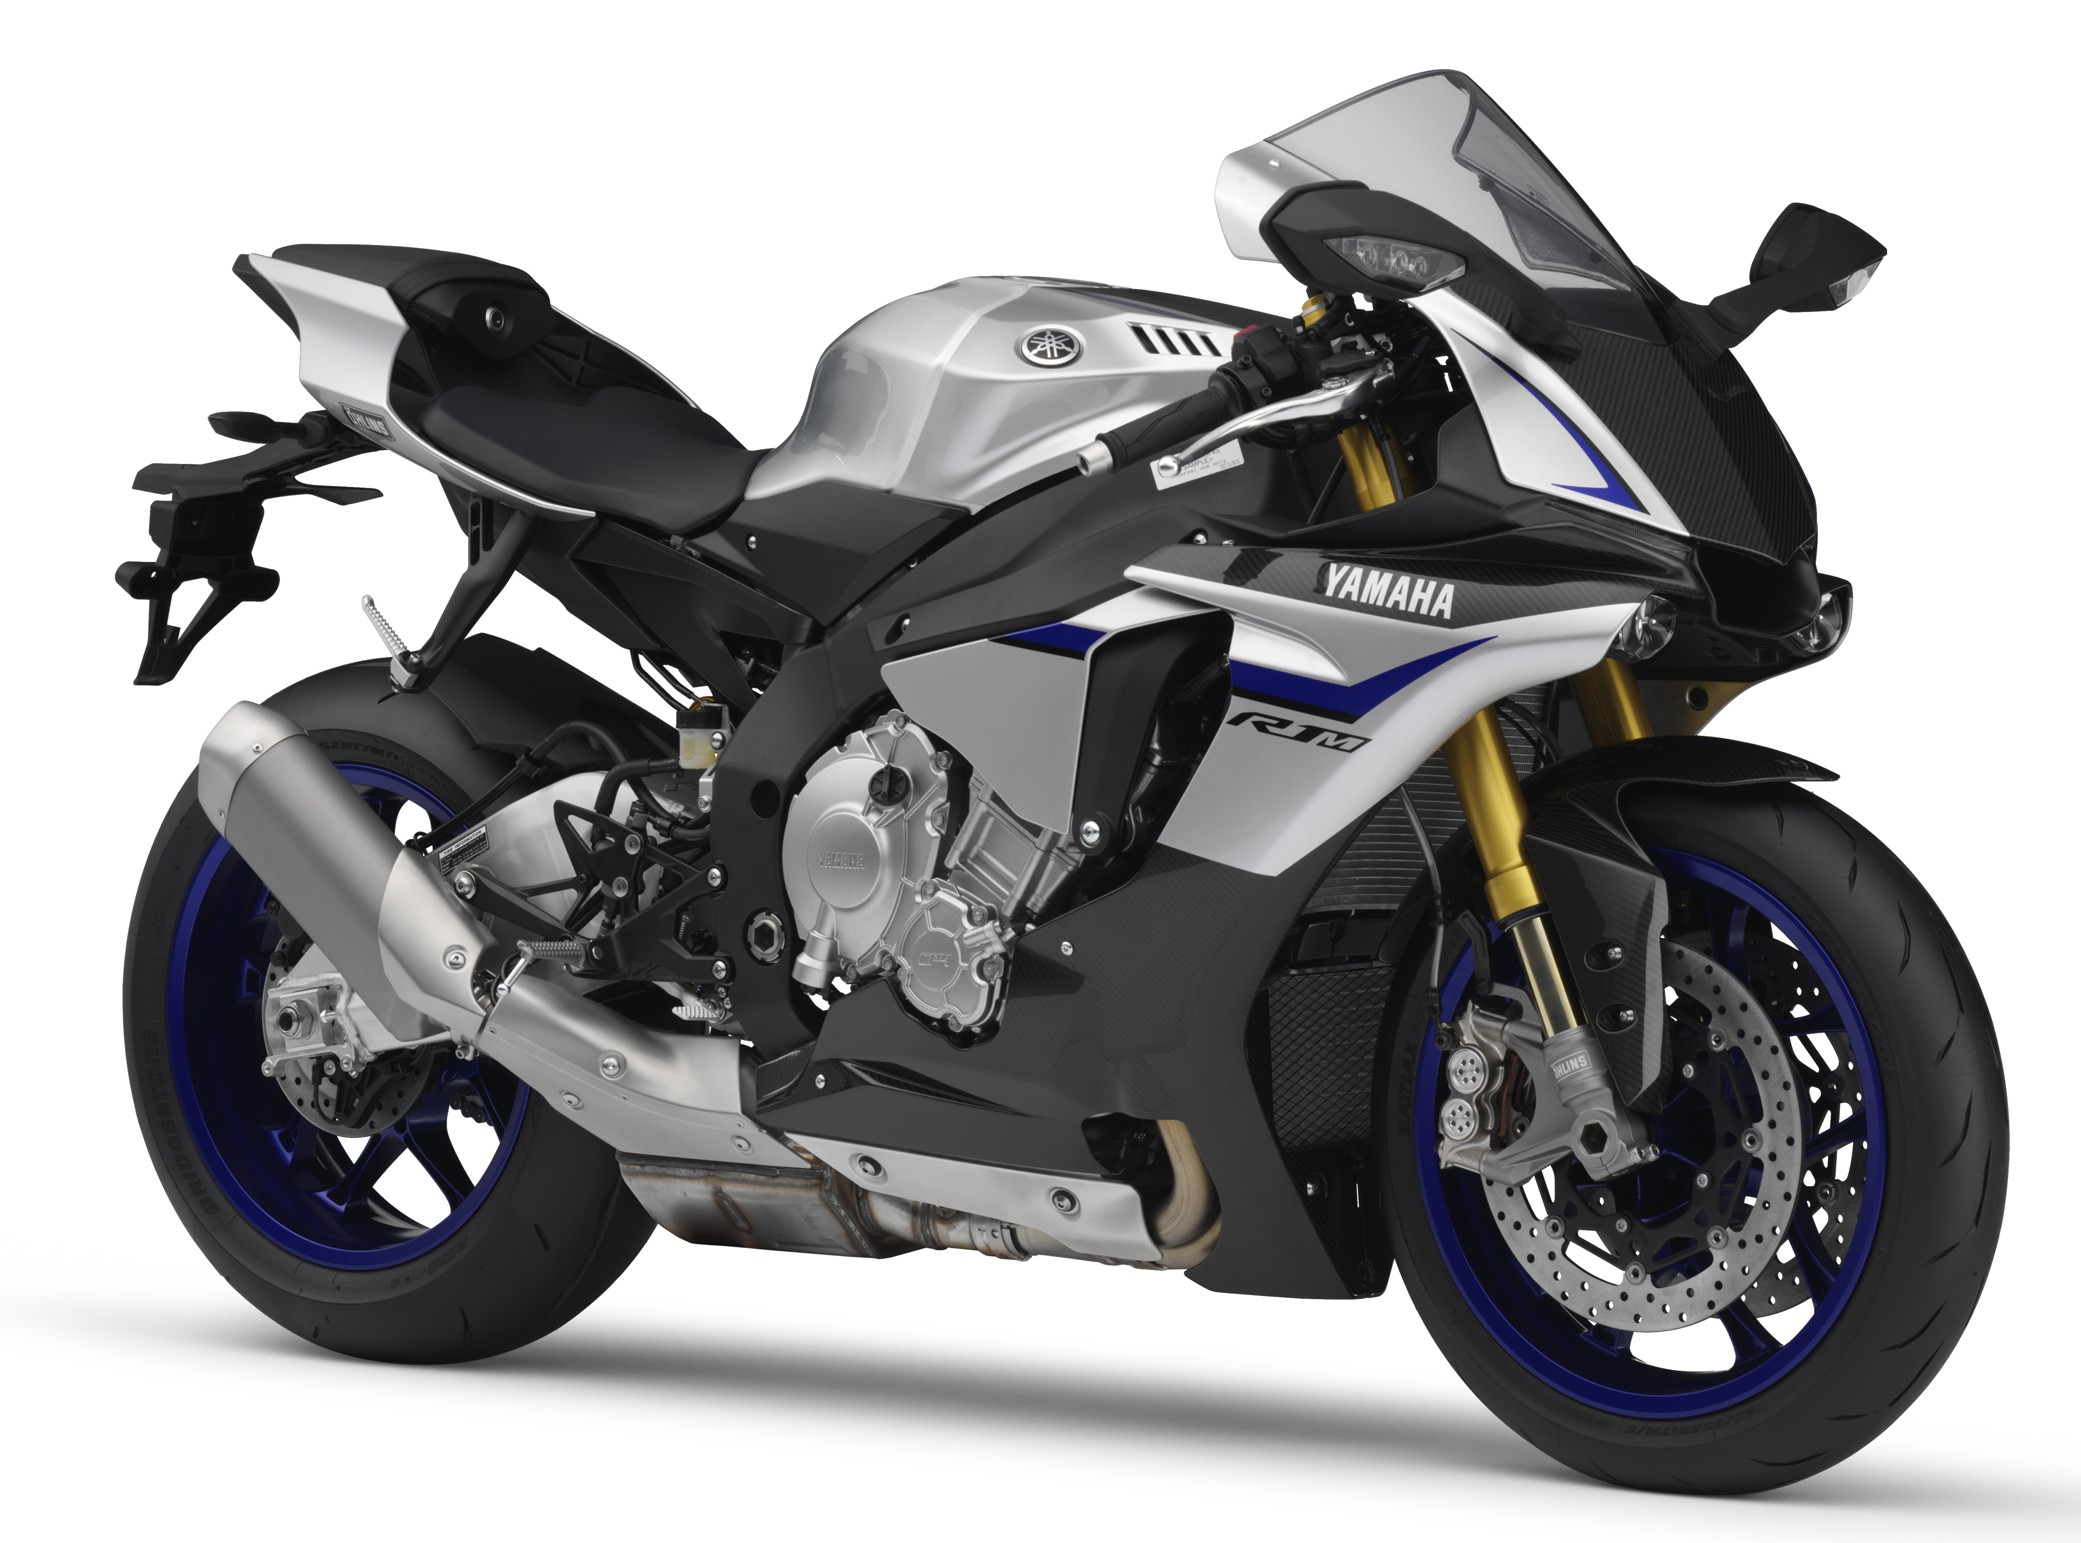 2015 Yamaha YZF R1 & R1M Launched in India: Prices, Details